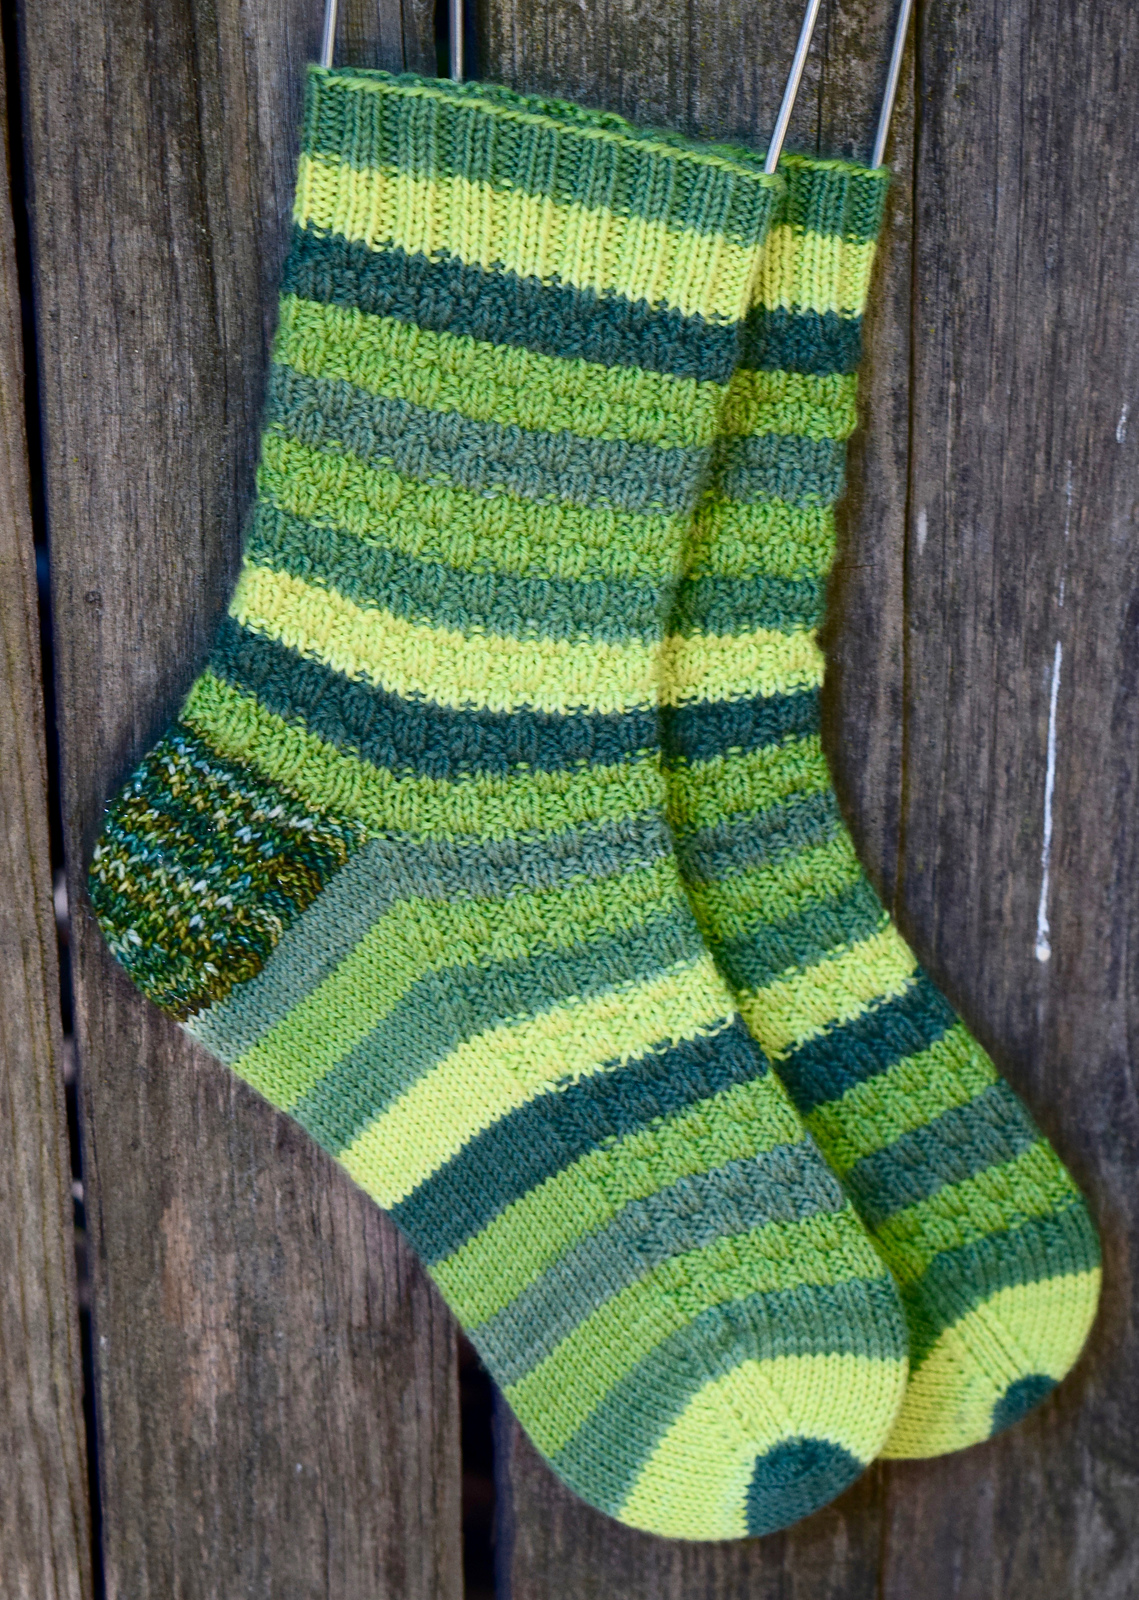 easy knit and purl sock knitting pattern using sock weight yarn that's a self-striping yarn